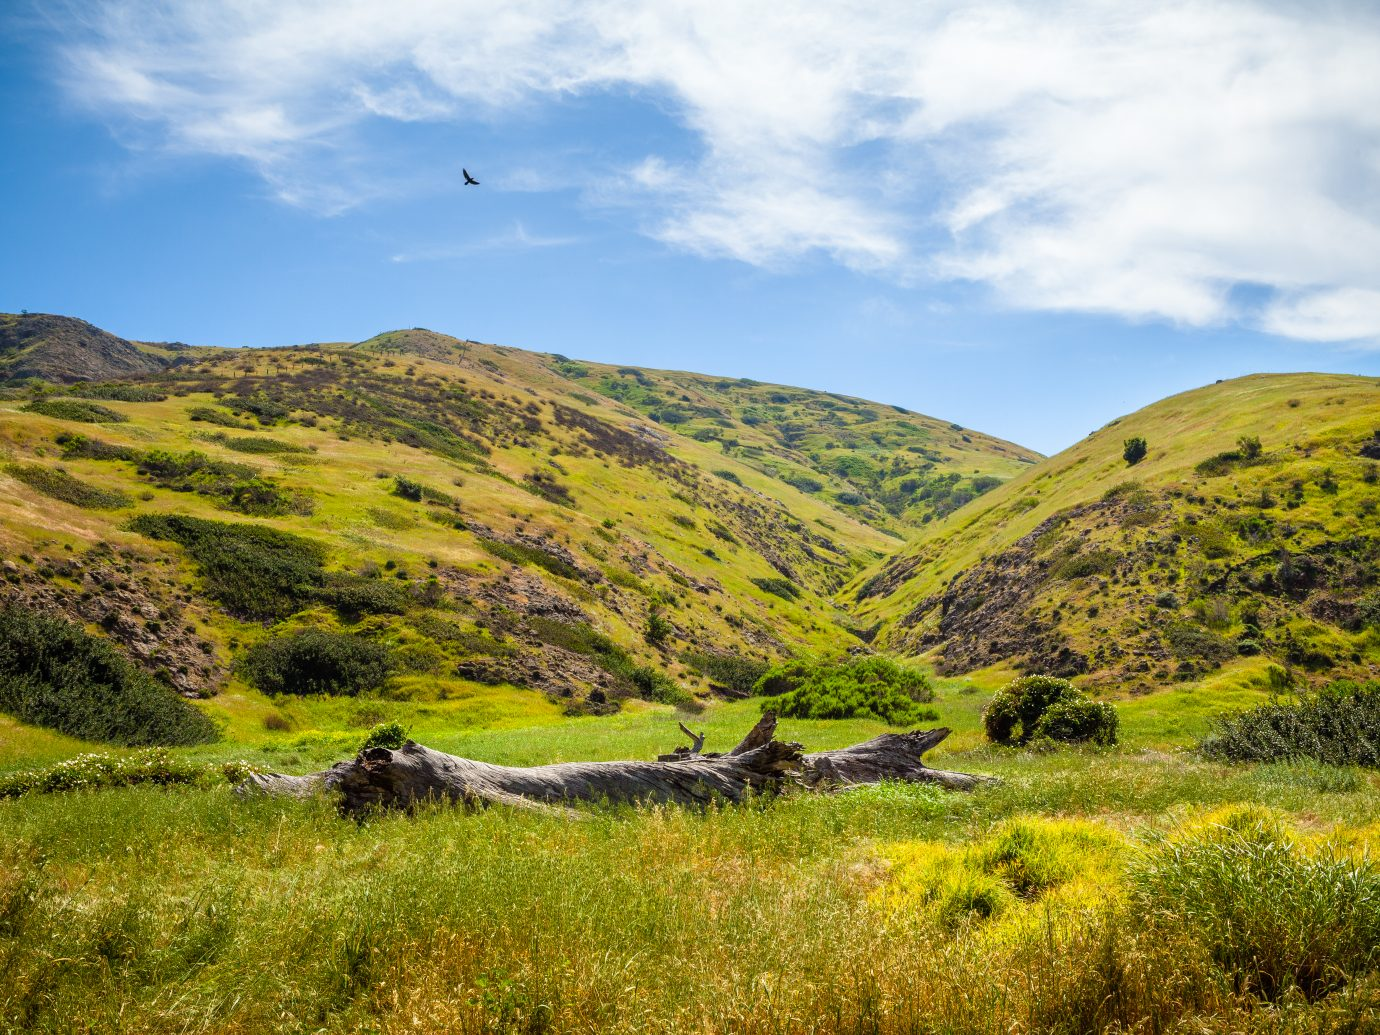 Grassy hills on the eastern end of Santa Cruz Island, California, in Channel Islands National Park, near the Scorpion Ranch campground.